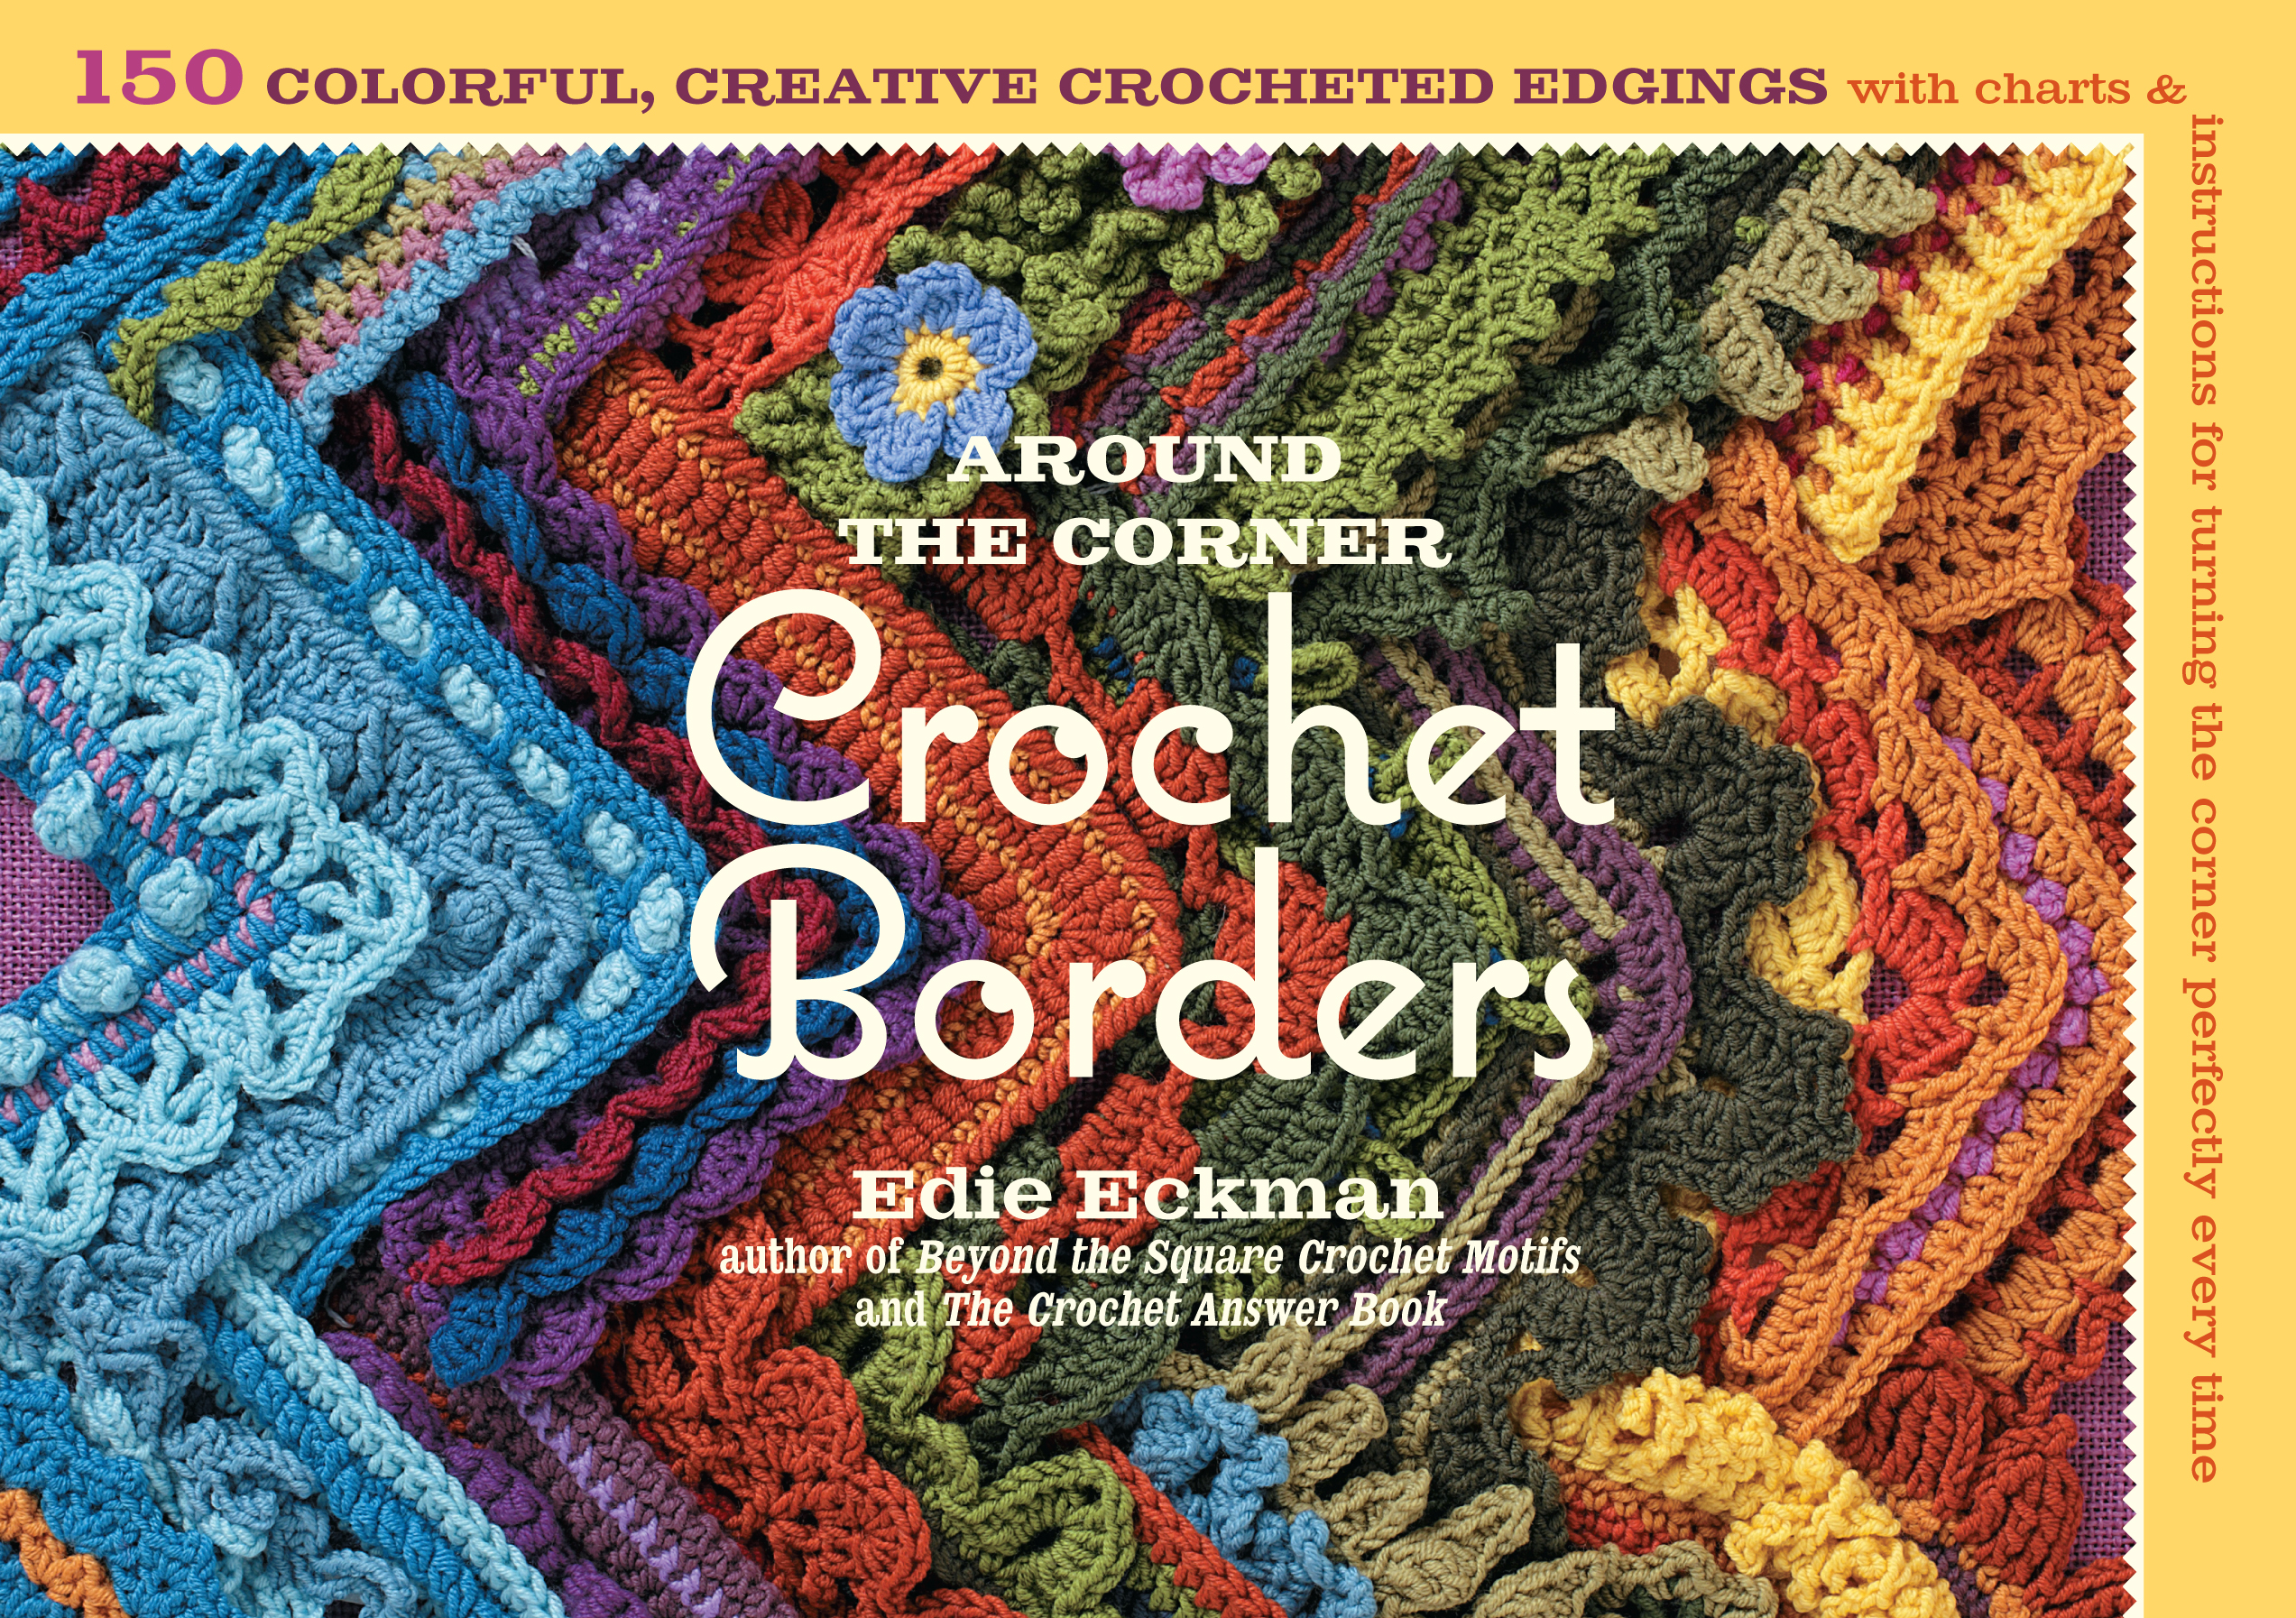 Around the Corner Crochet Borders 150 Colorful, Creative Edging Designs with Charts and Instructions for Turning the Corner Perfectly Every Time - Edie Eckman